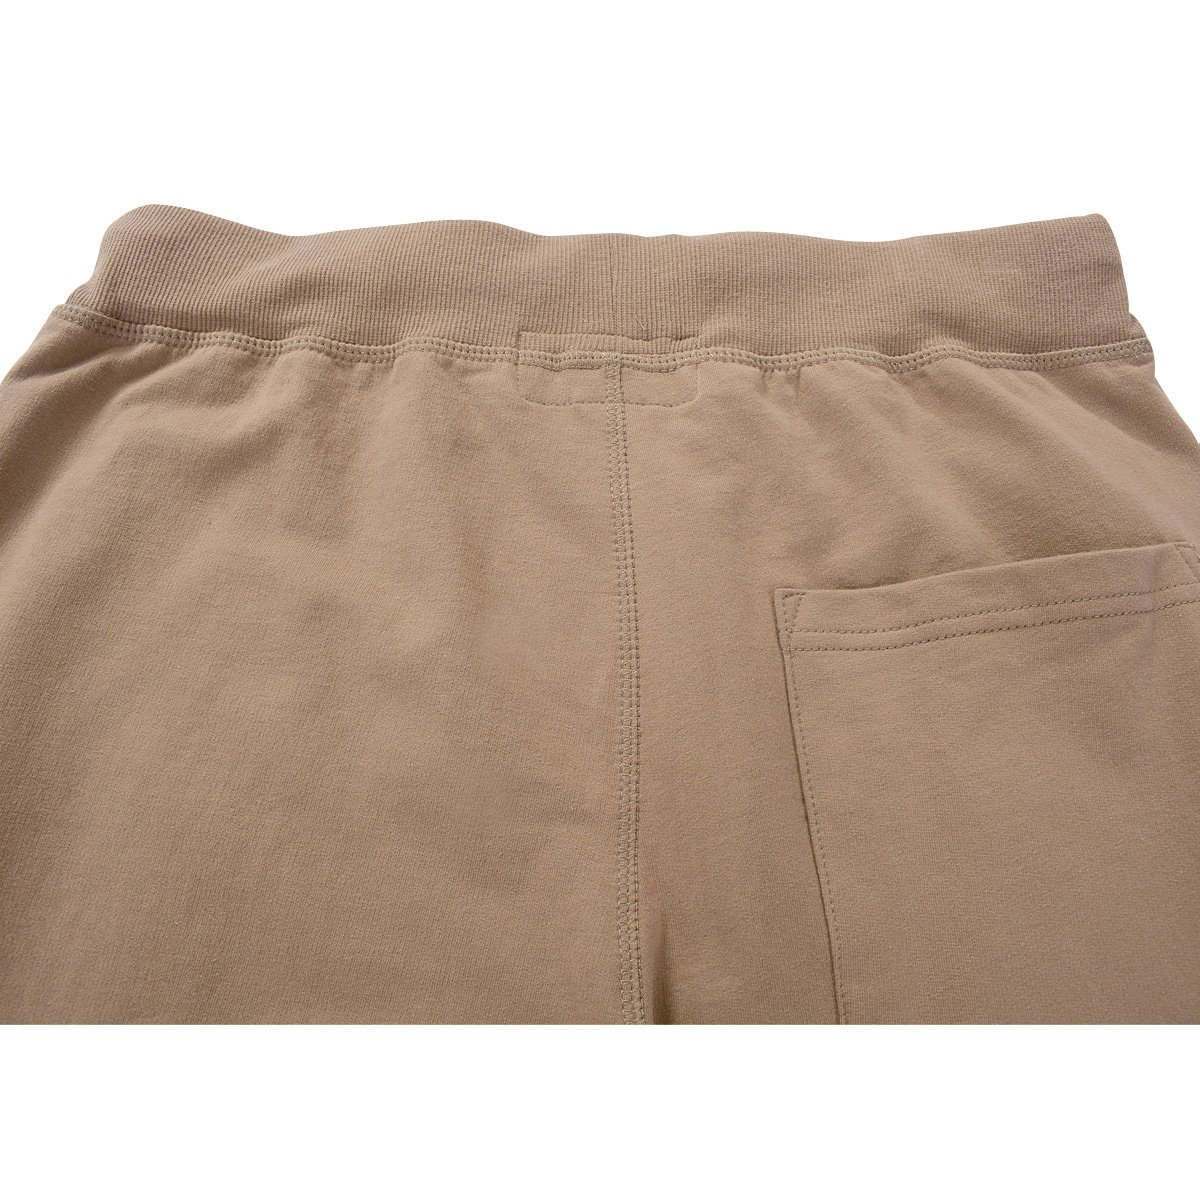 Amy Coulee Men's Cotton Casual Short with Pockets (S, Brown) by Amy Coulee (Image #5)